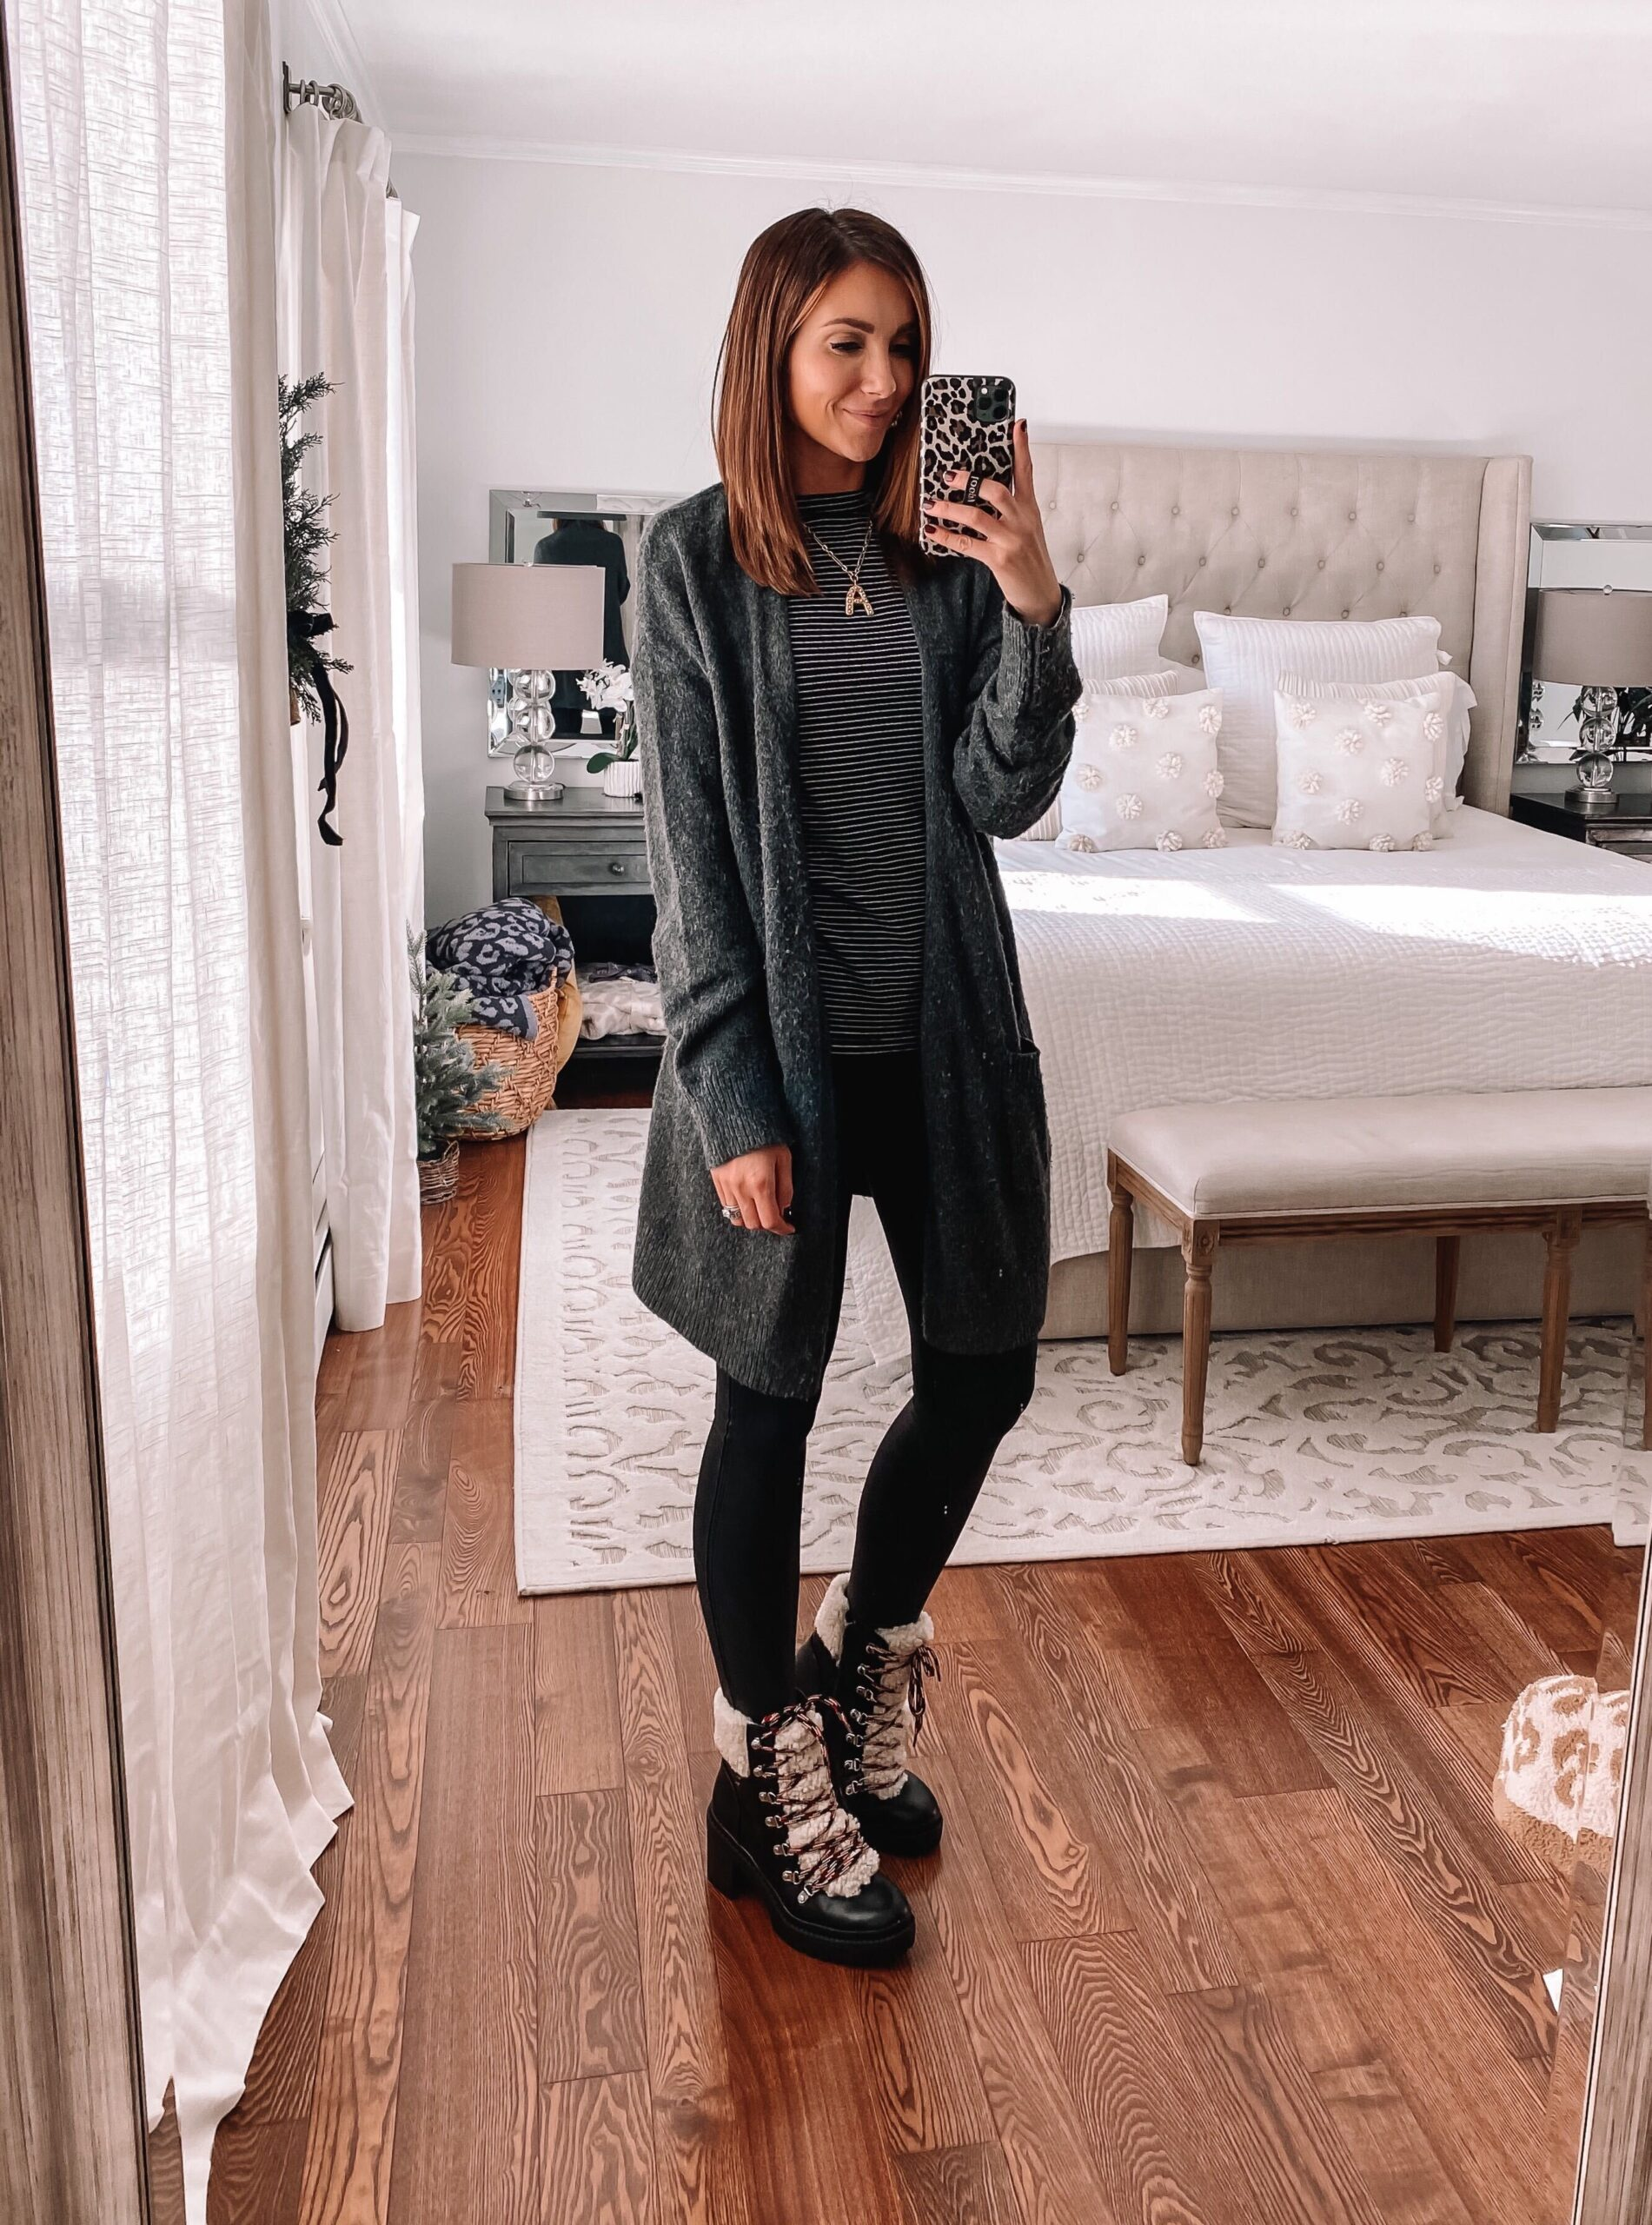 target style, combat boots with faux leather leggings